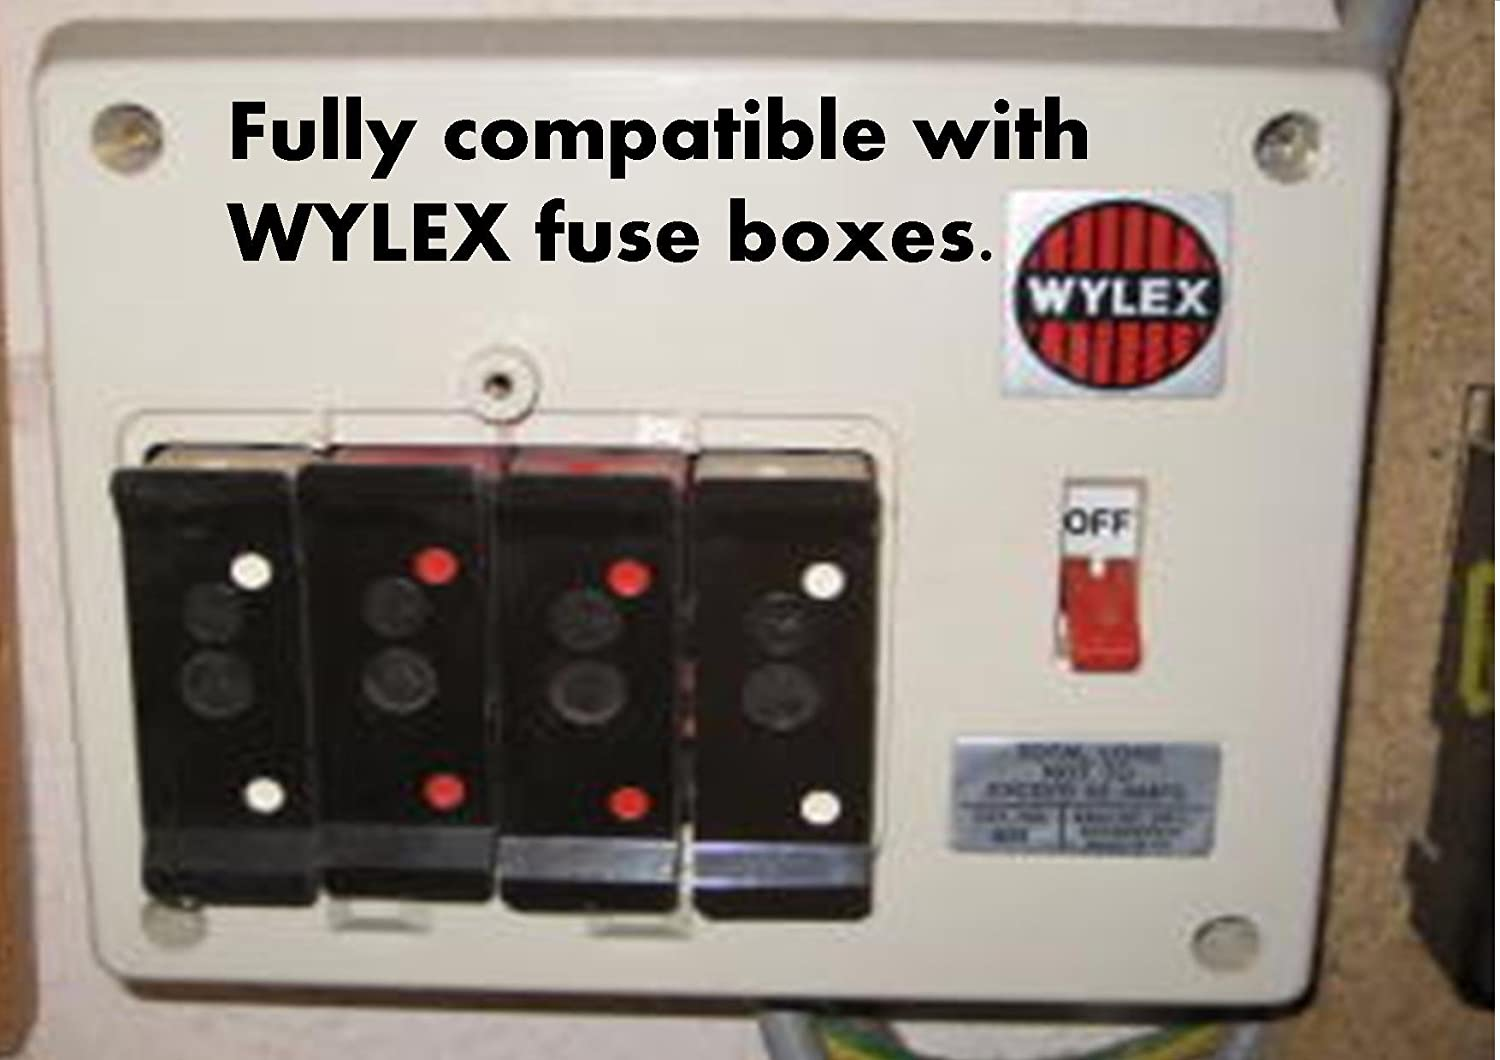 Wylex fuse box wiring diagram images